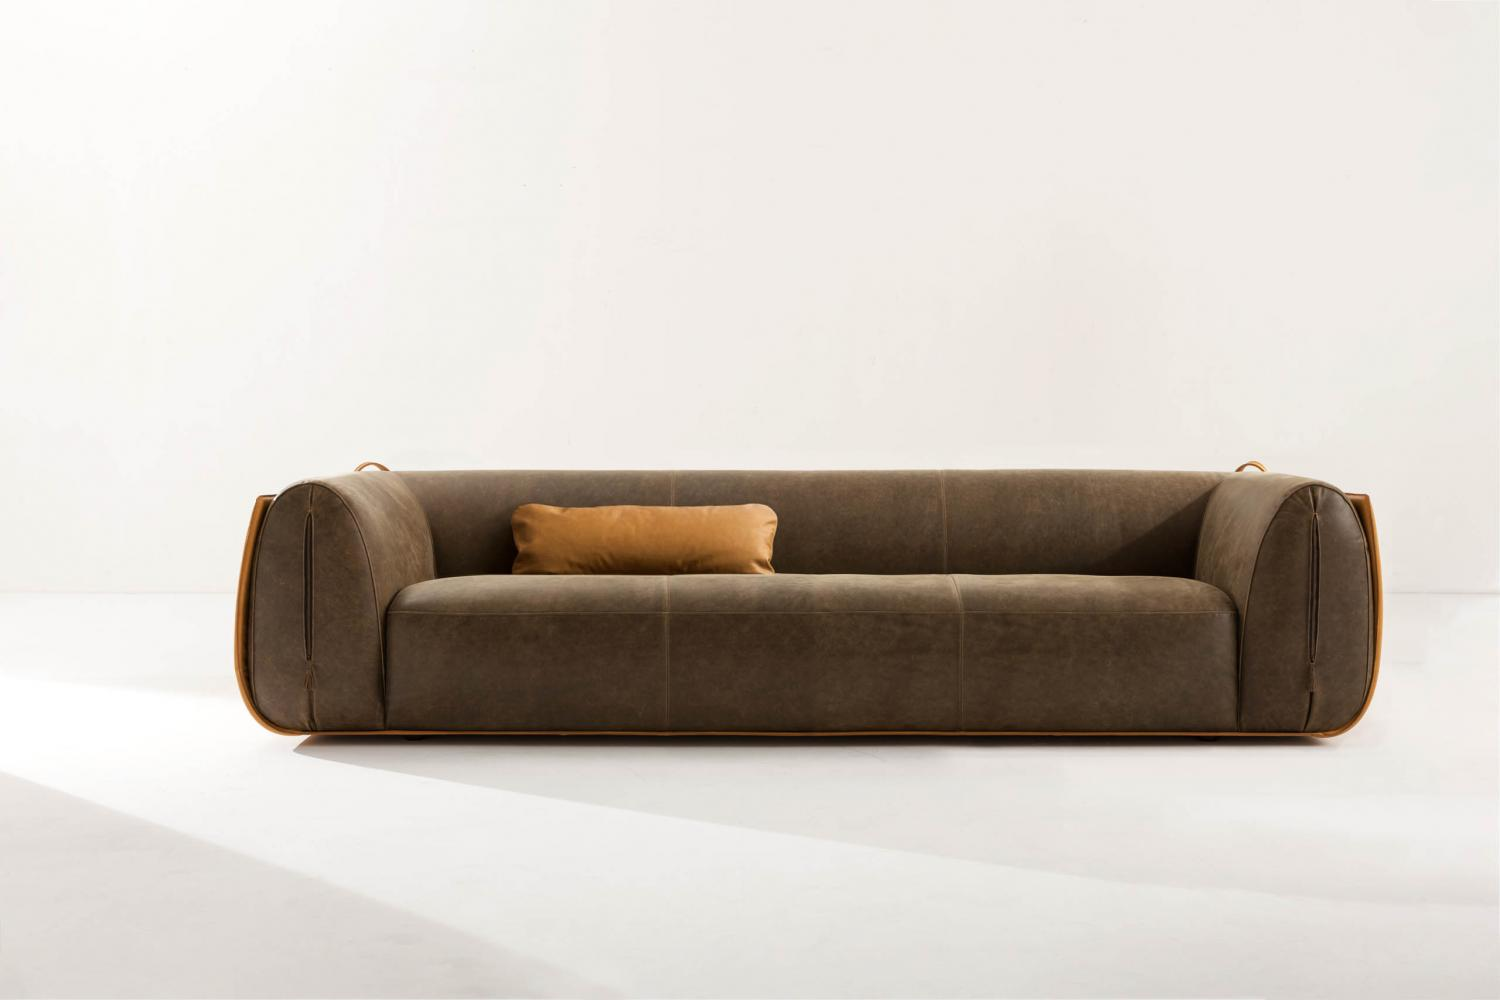 Meir is a customizable modern luxury sofa in leather